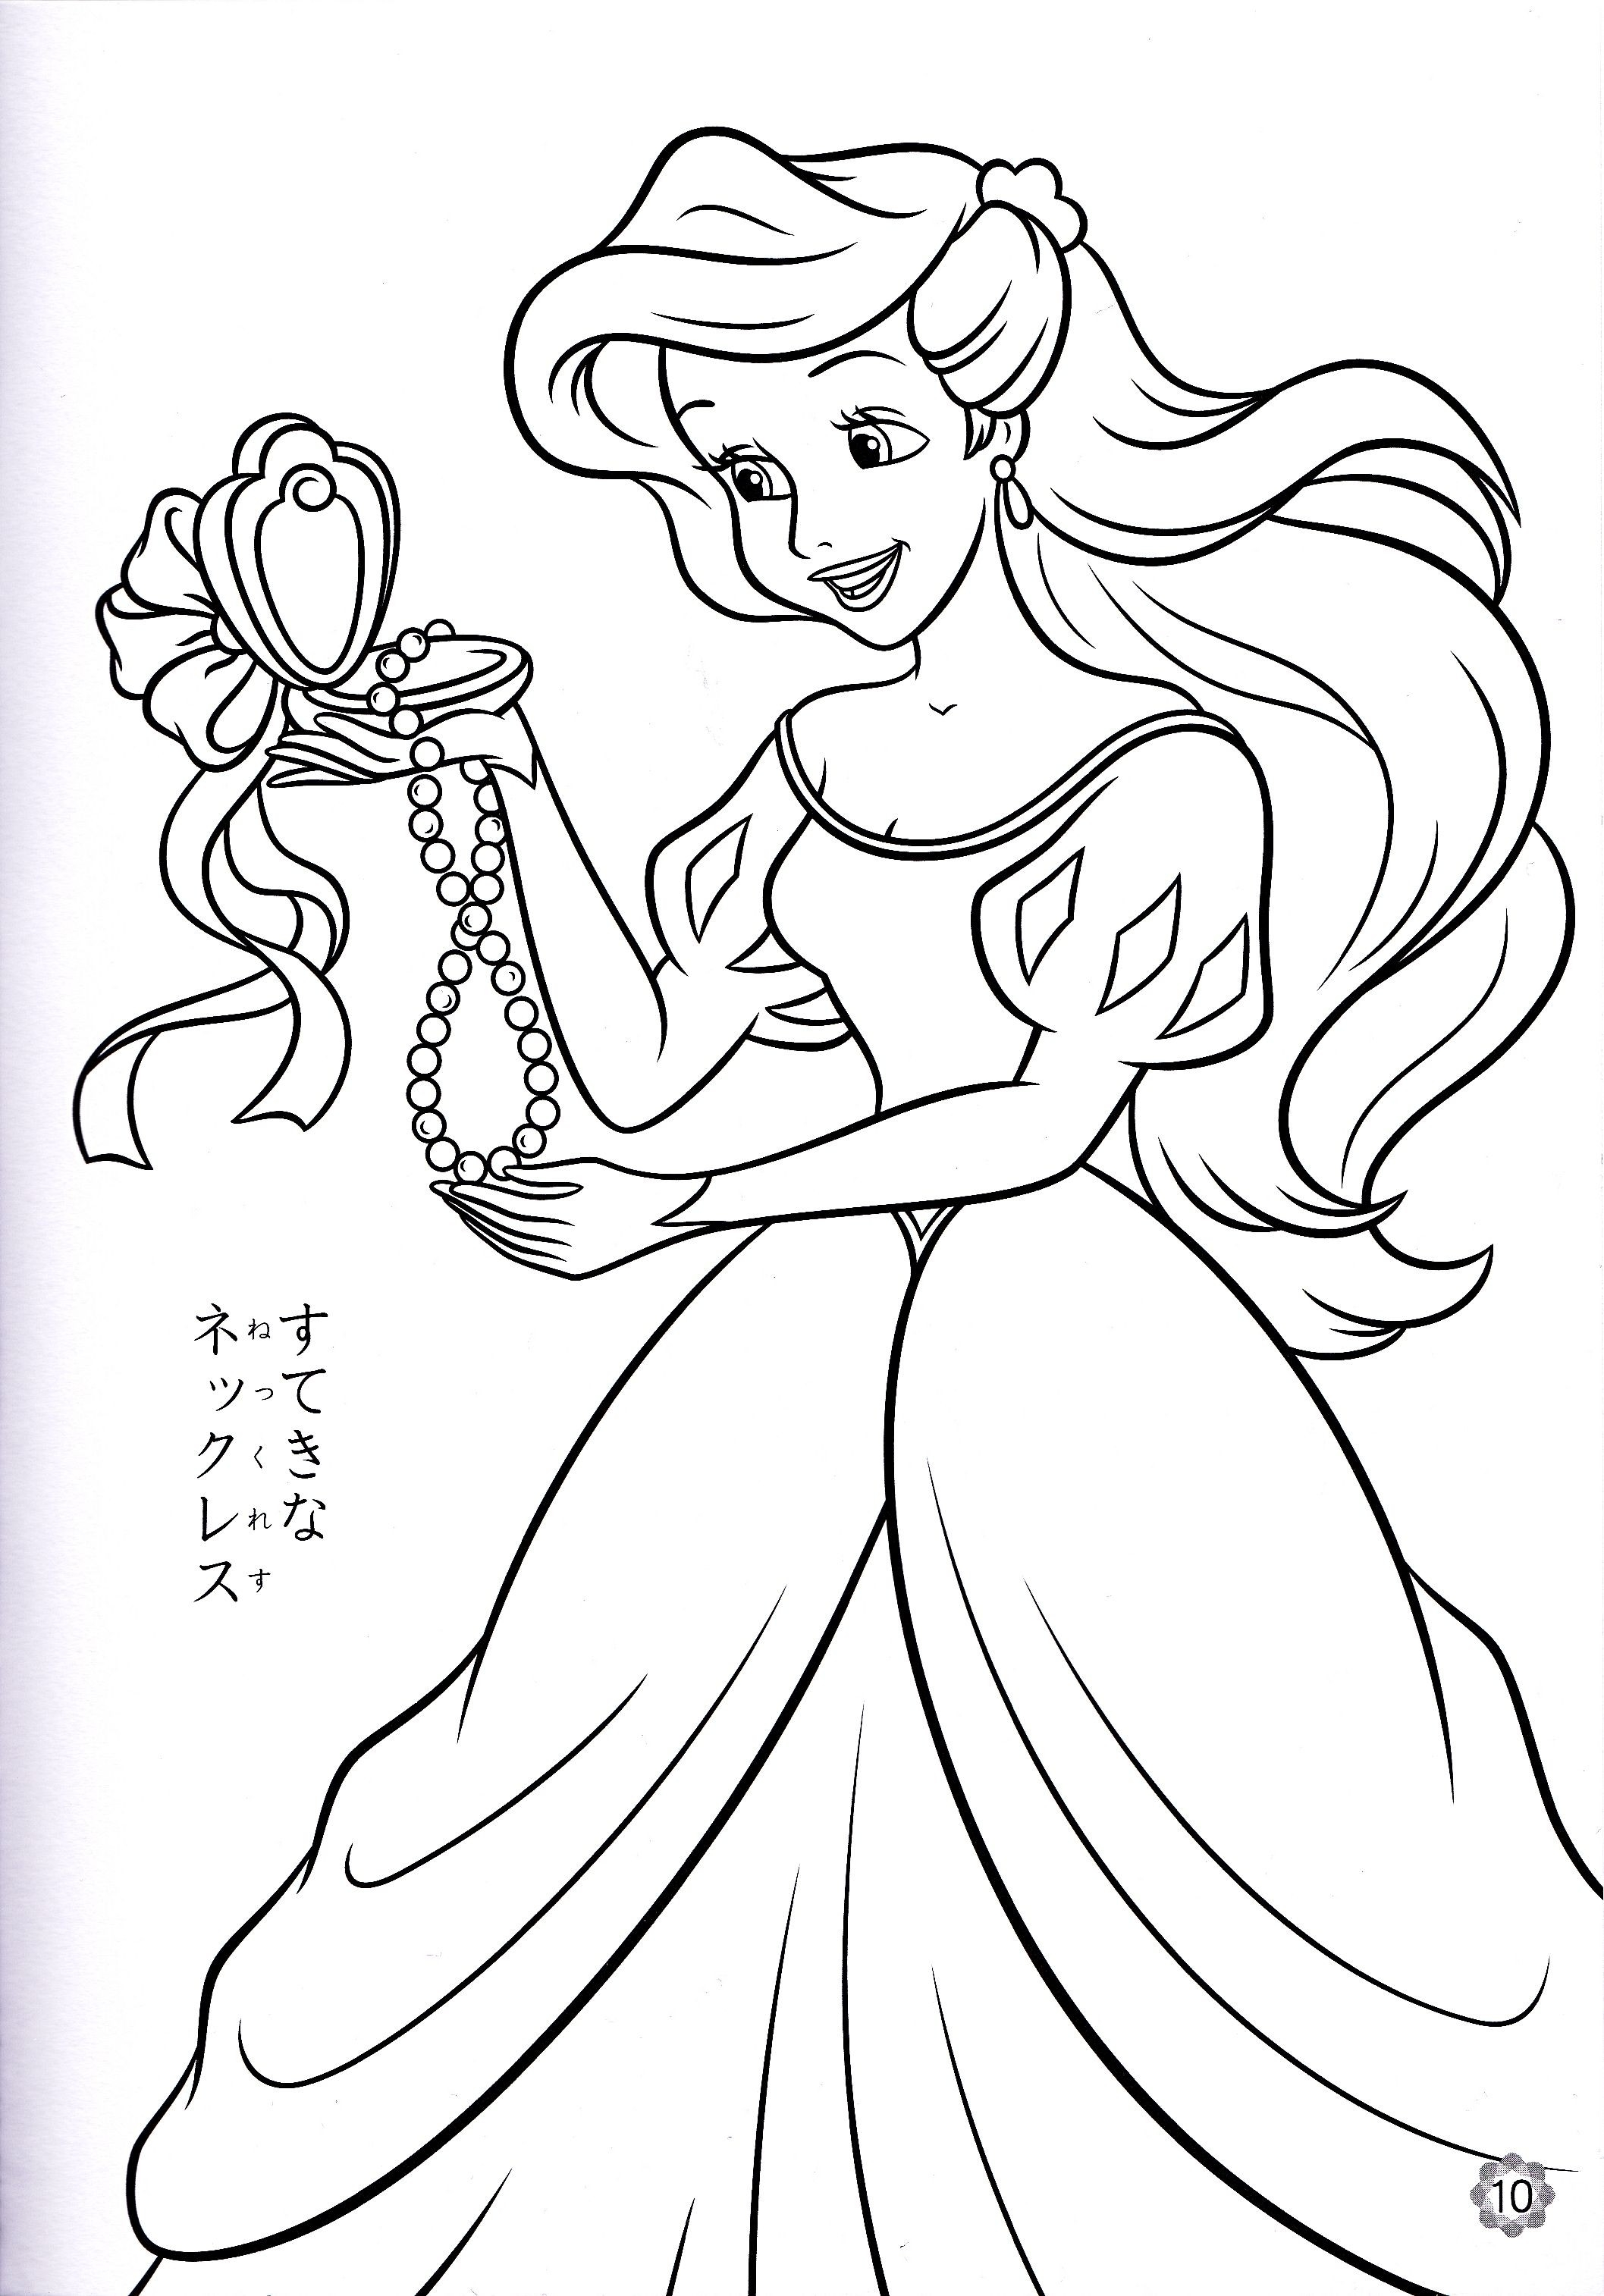 Disney Princess Ariel Coloring Pages For Girls | Examples ...